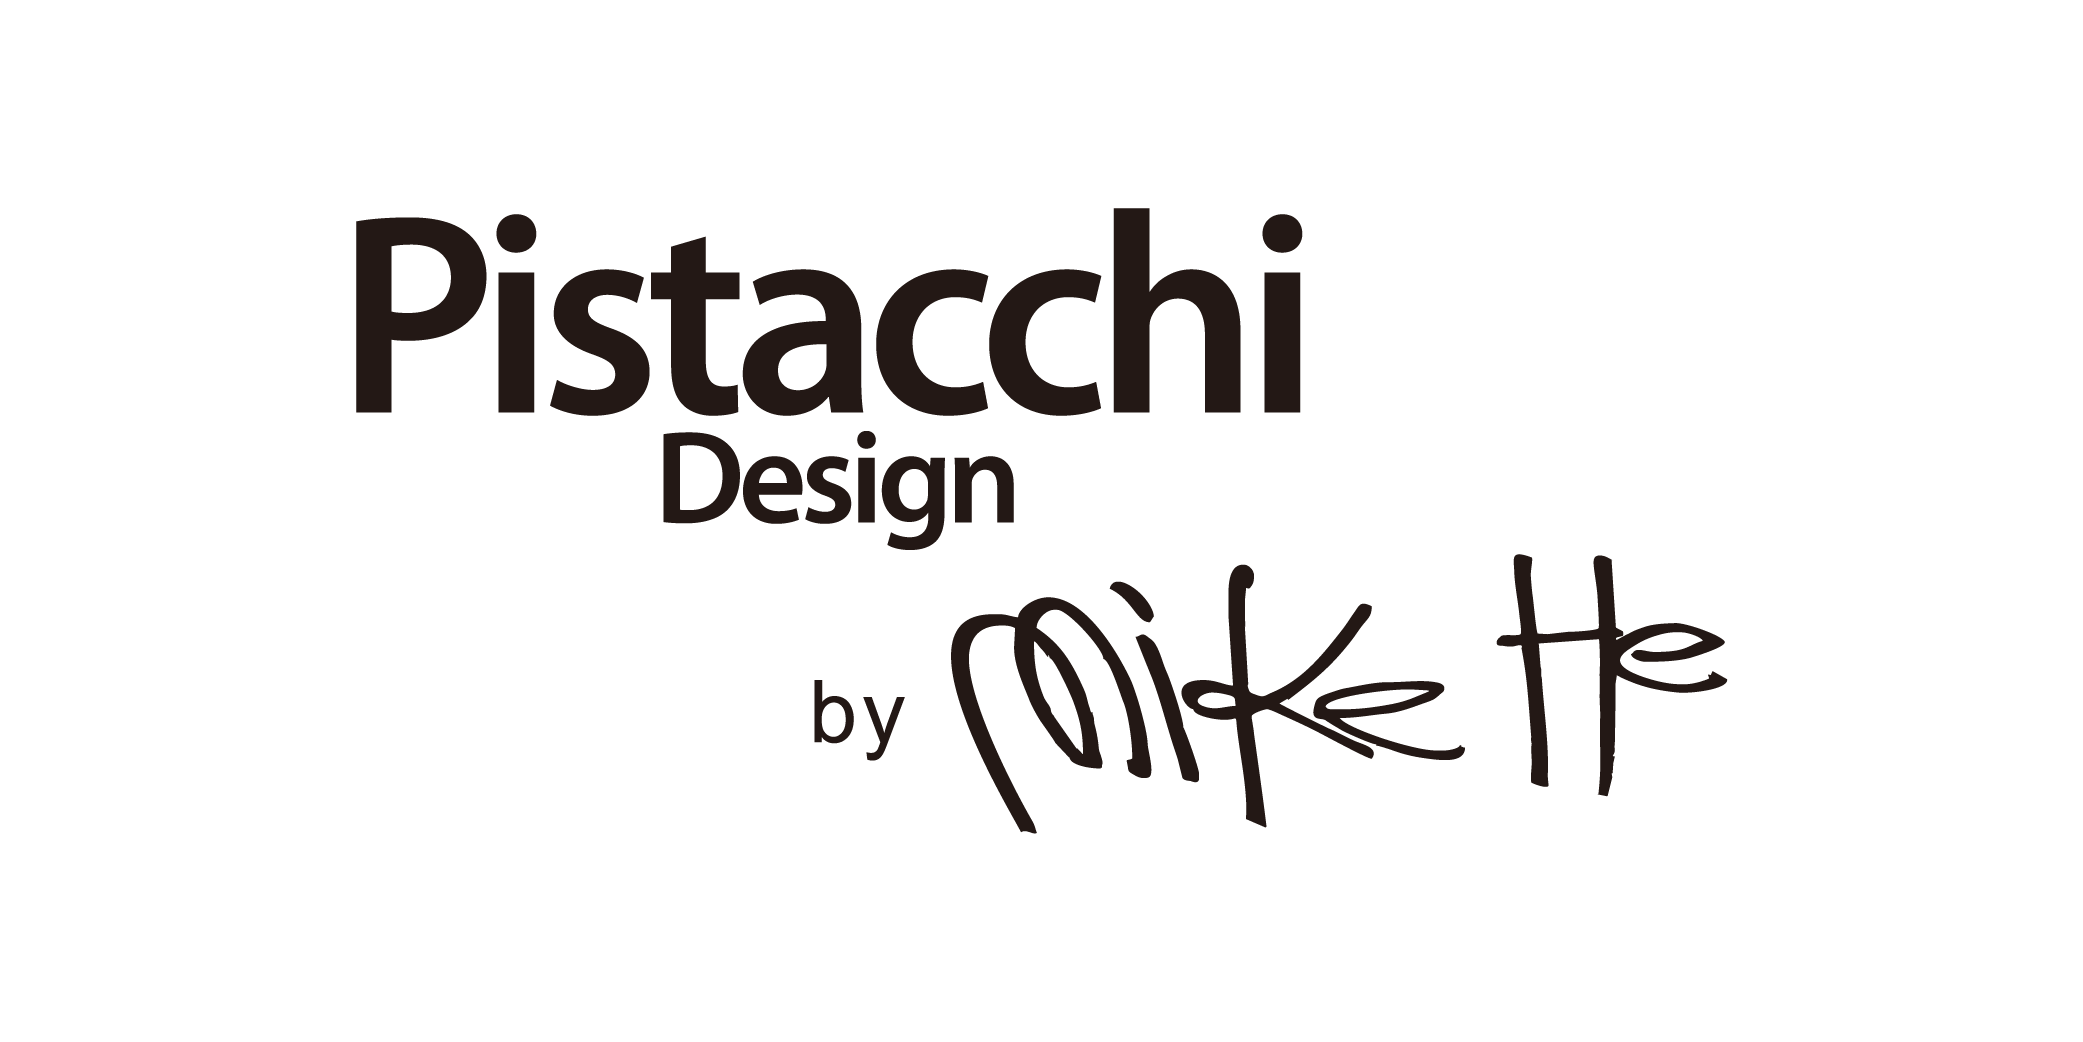 LOGO(網頁用)_Pistacchi.png